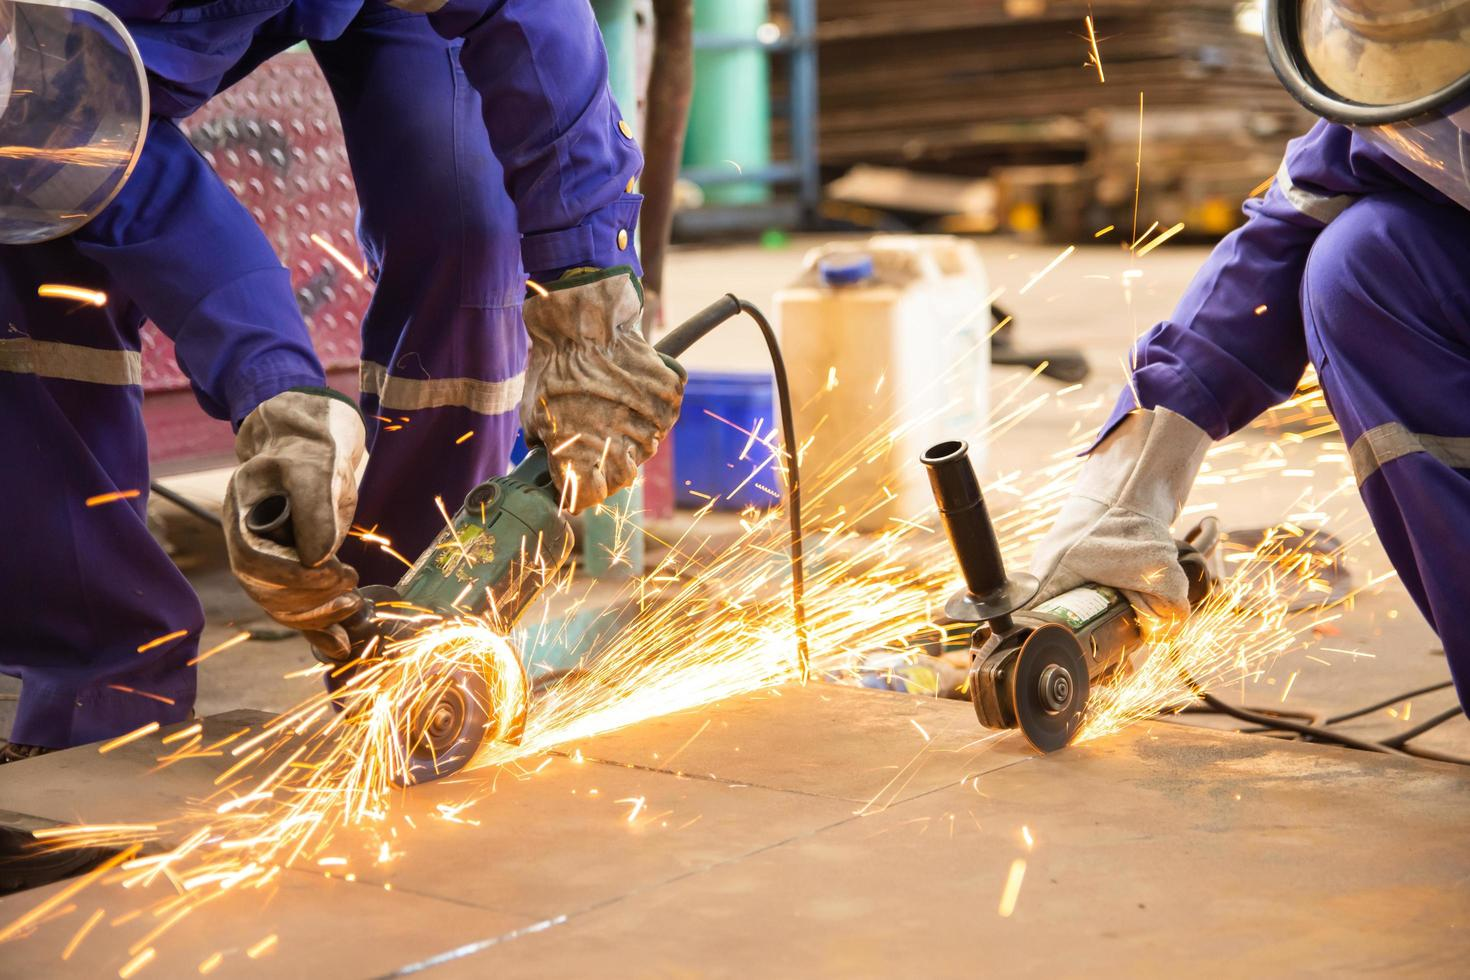 Workers cutting metal sheet with electric grinder photo